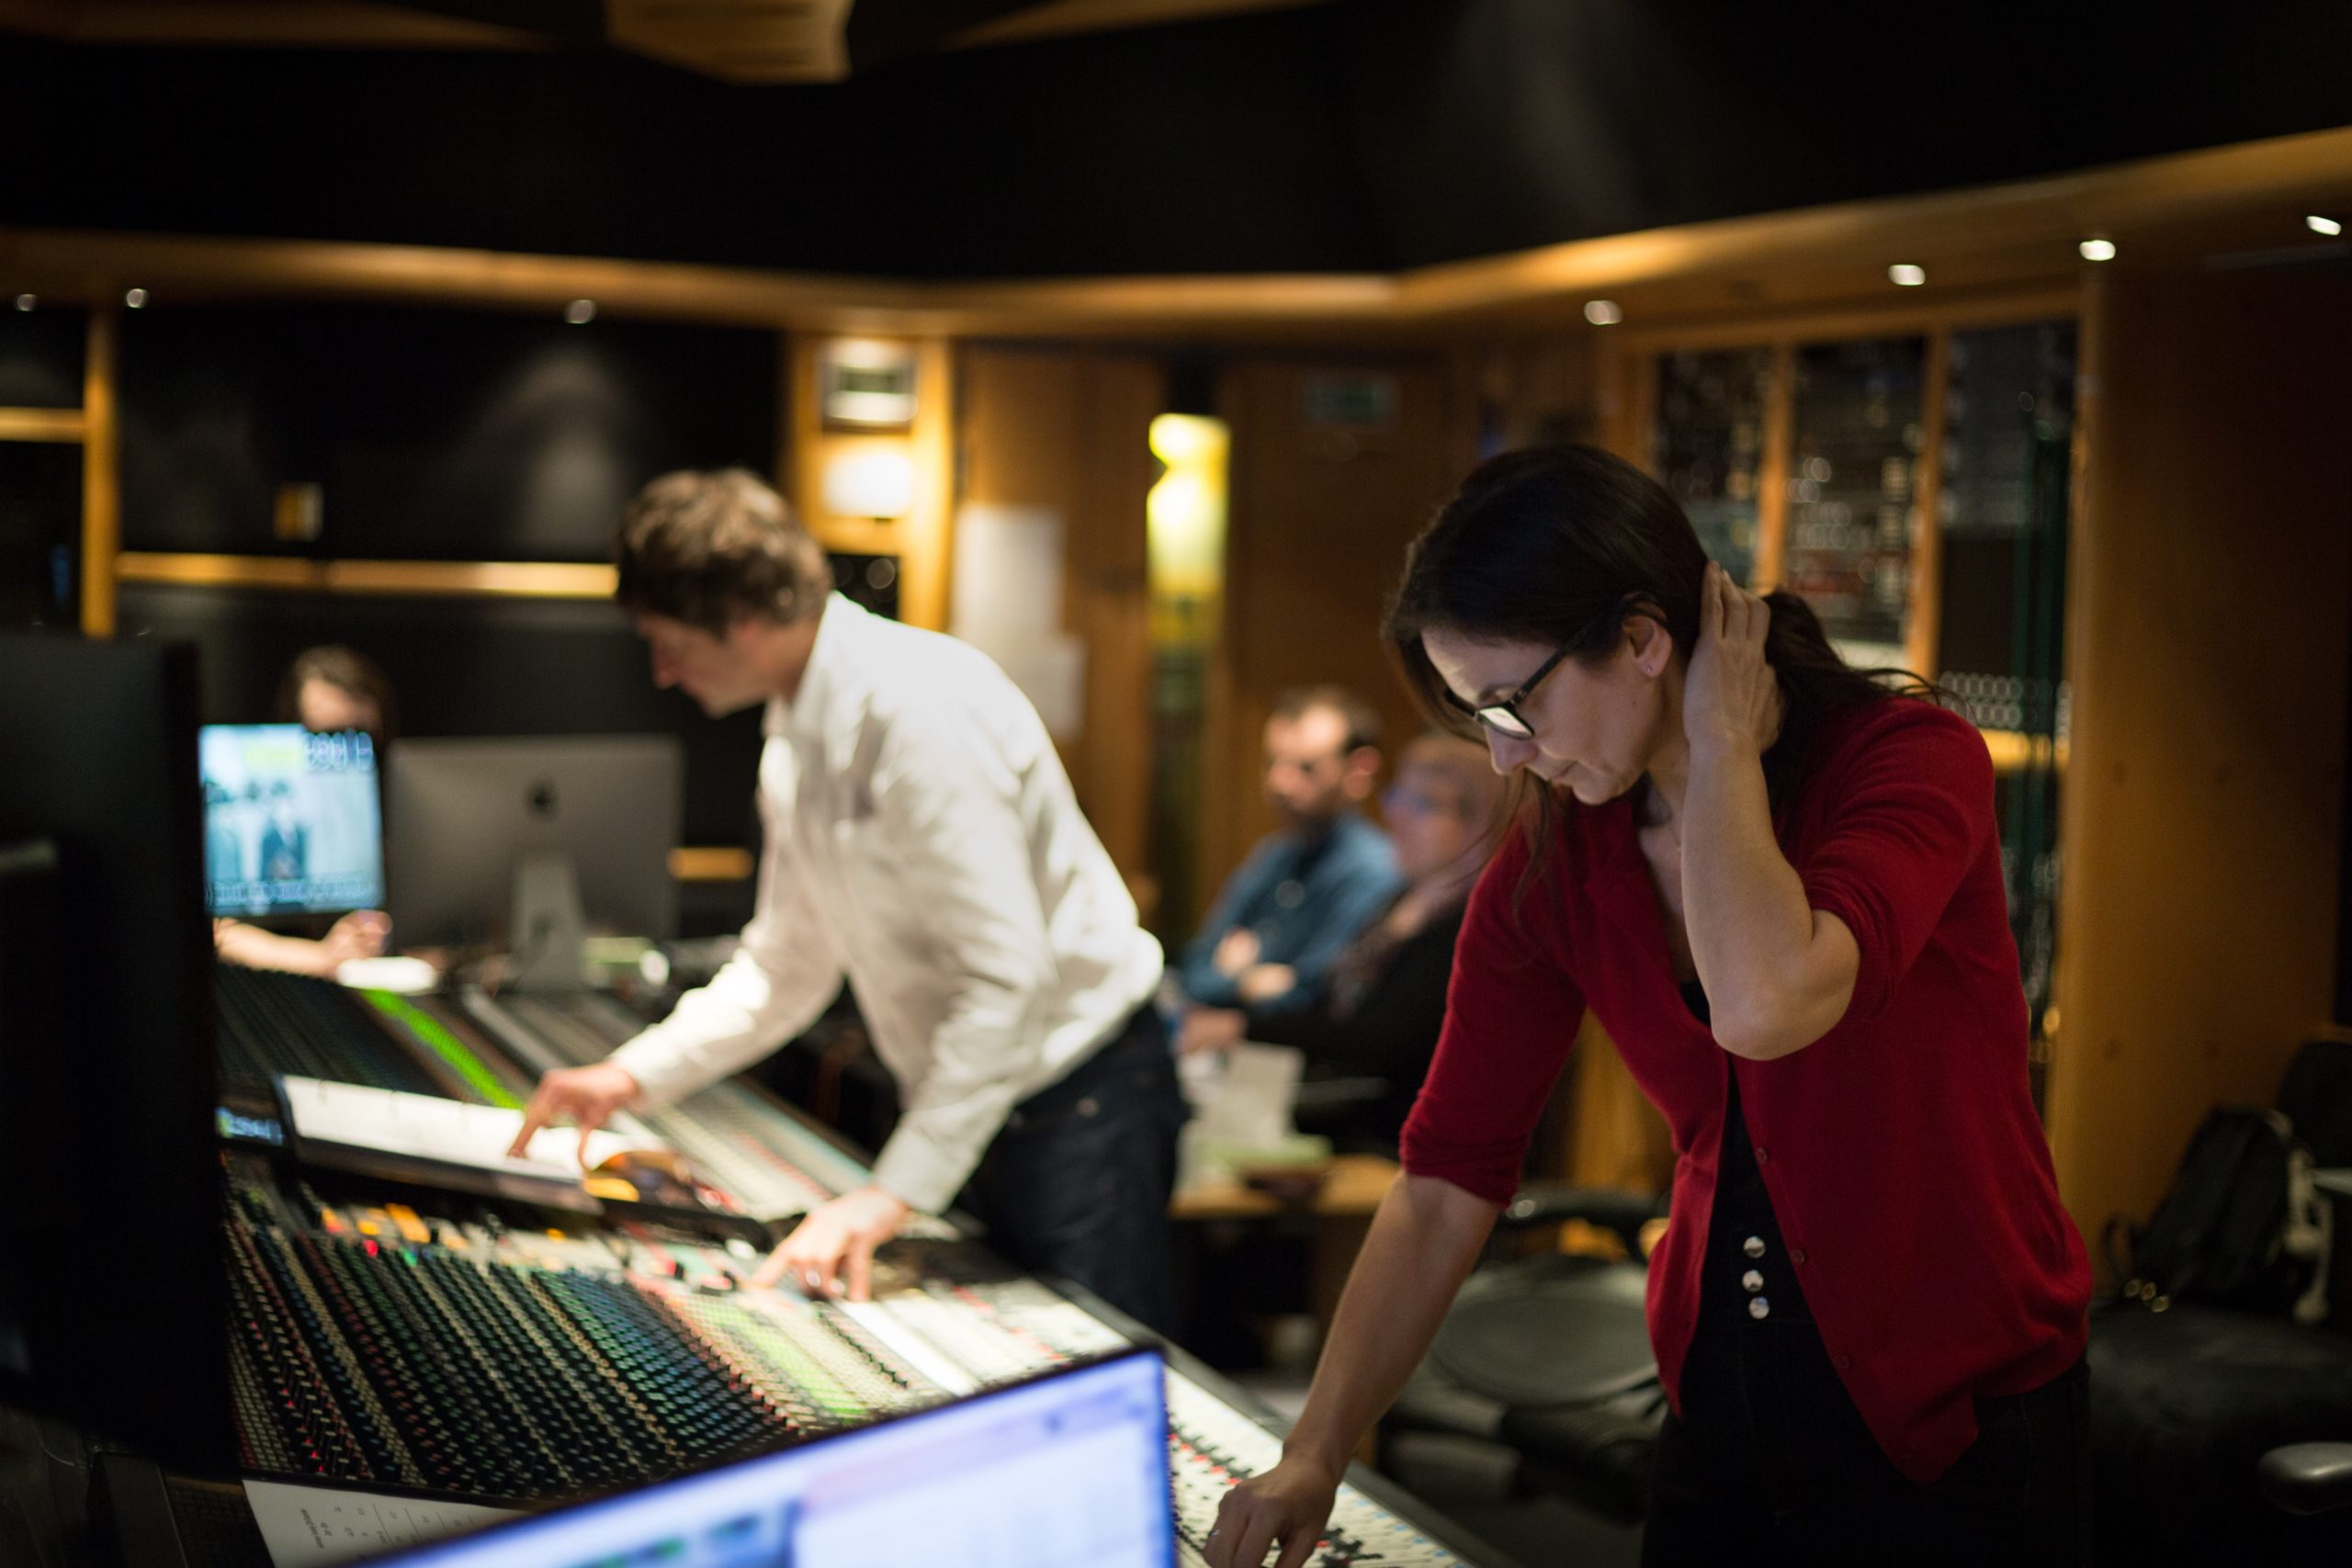 image of Alexandra Harwood in Abbey Road